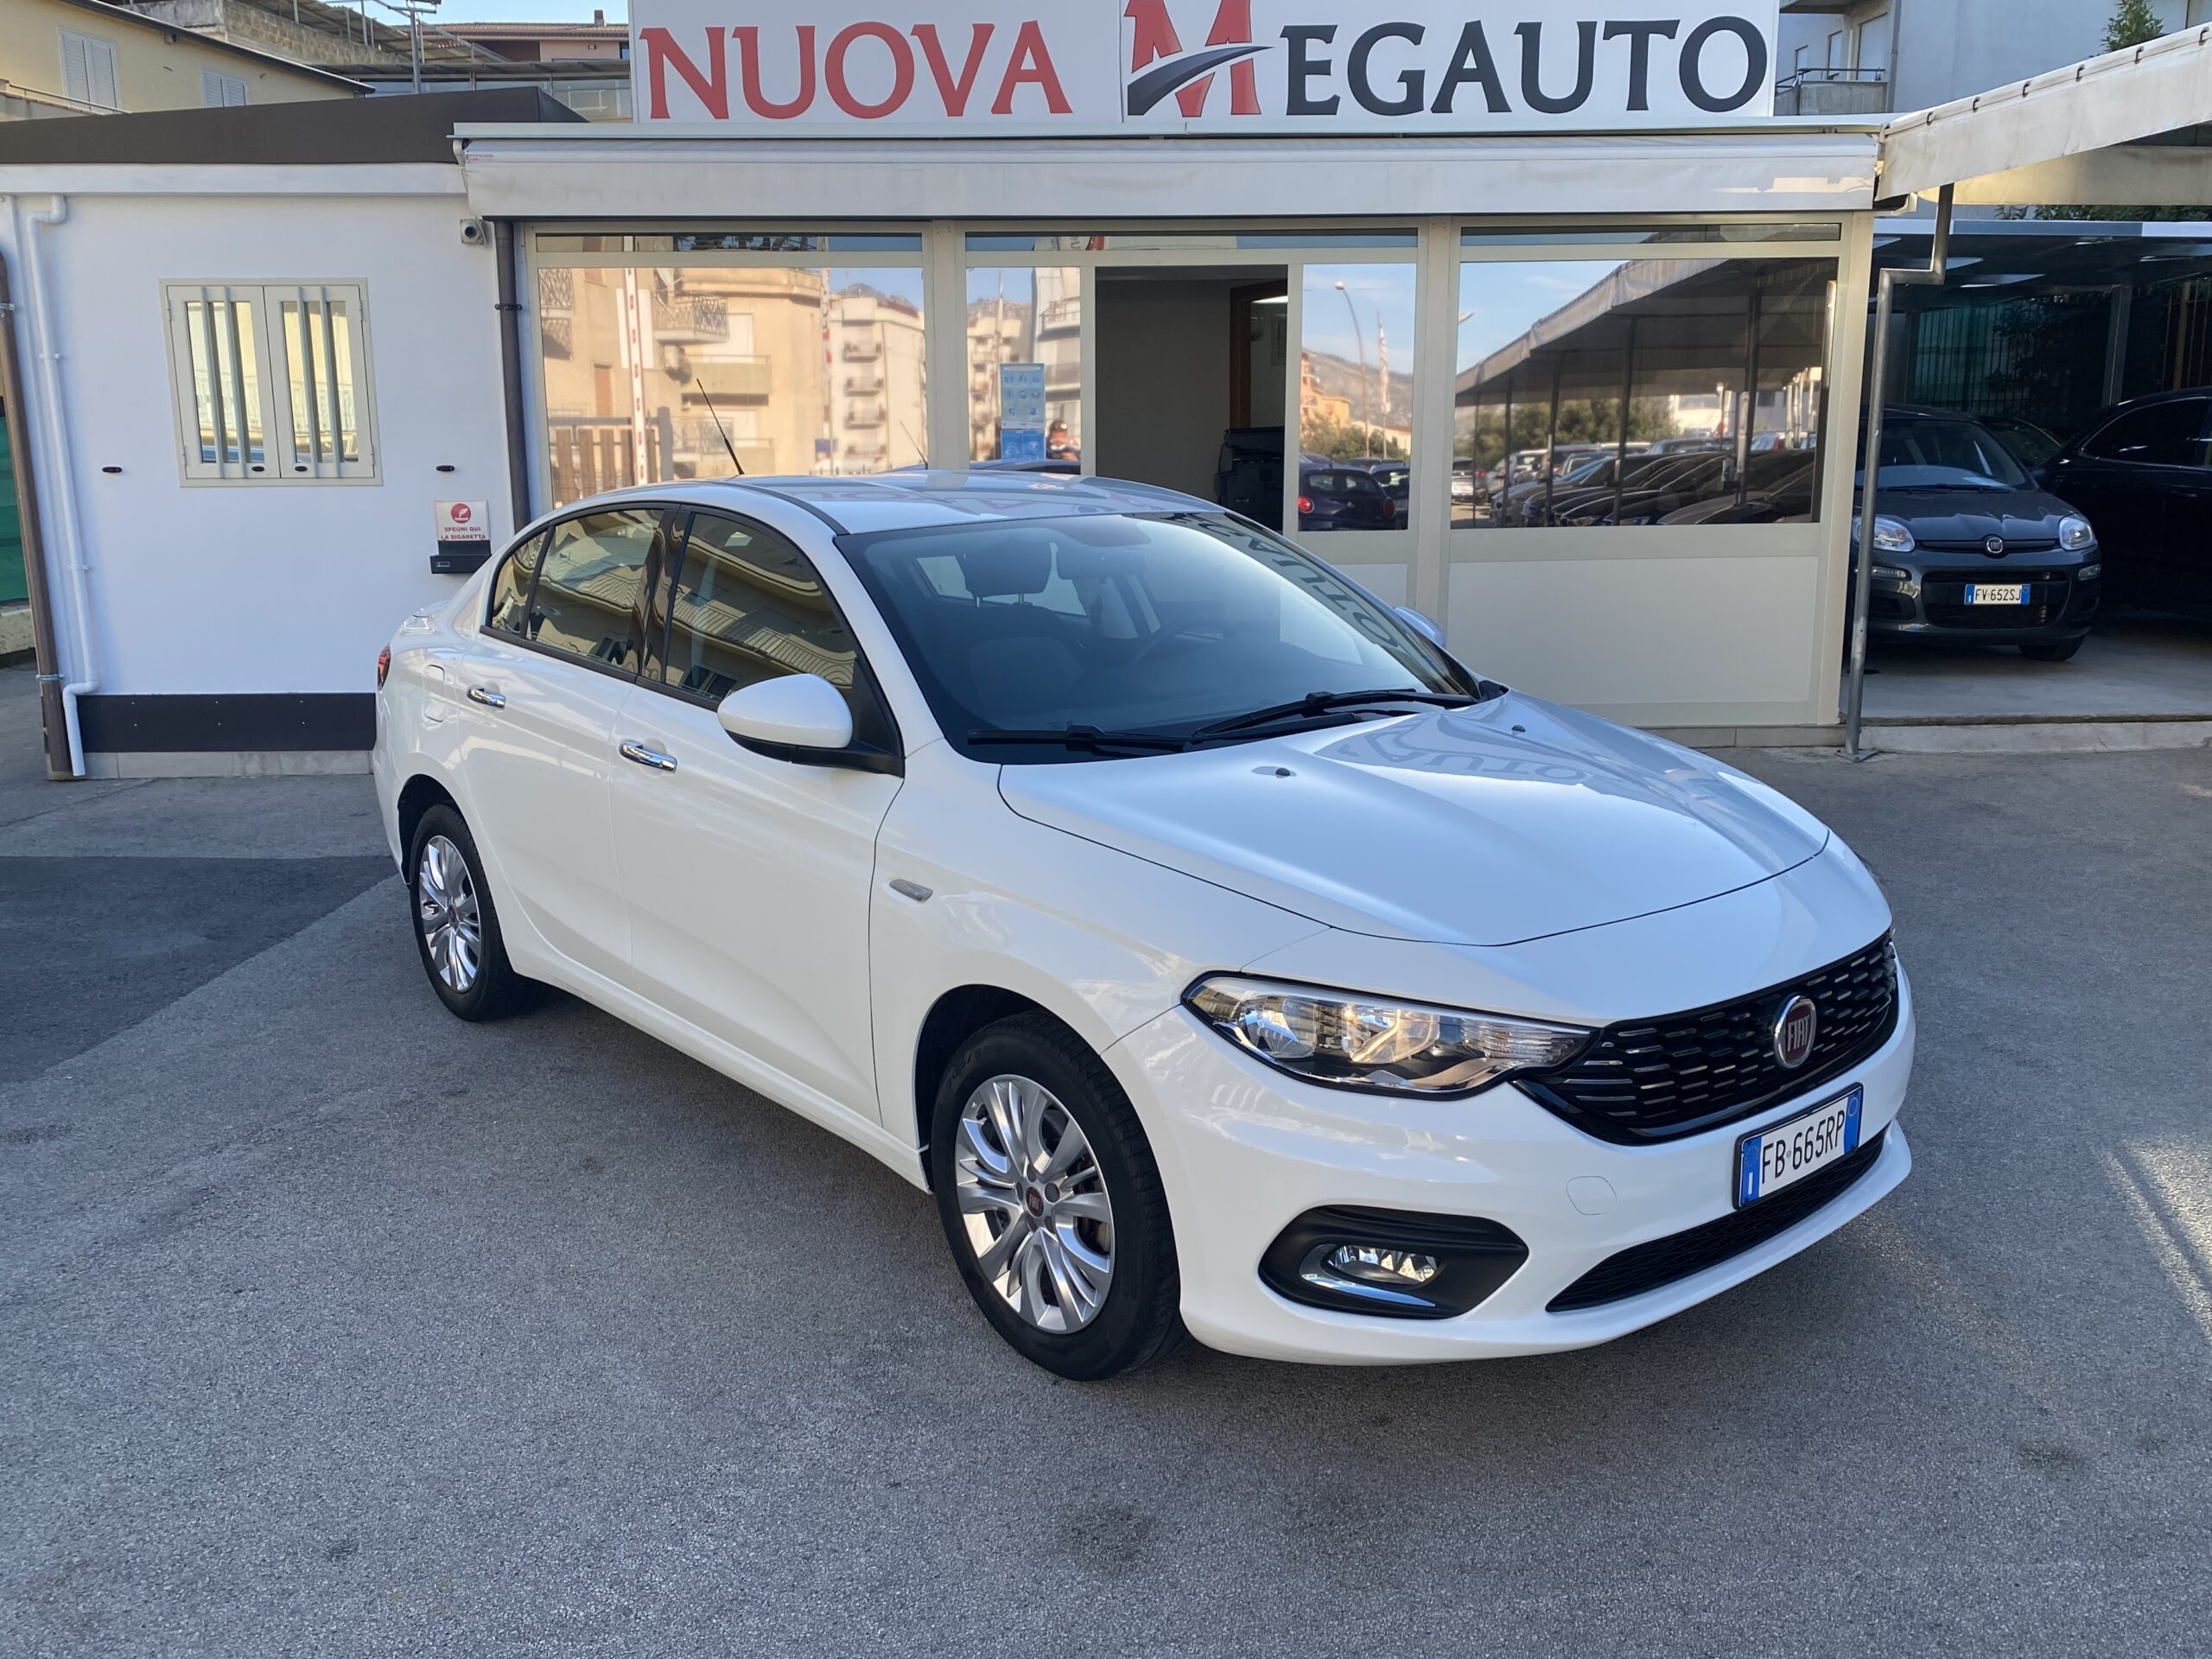 Fiat Tipo 1.4 4 Porte Opening Edition